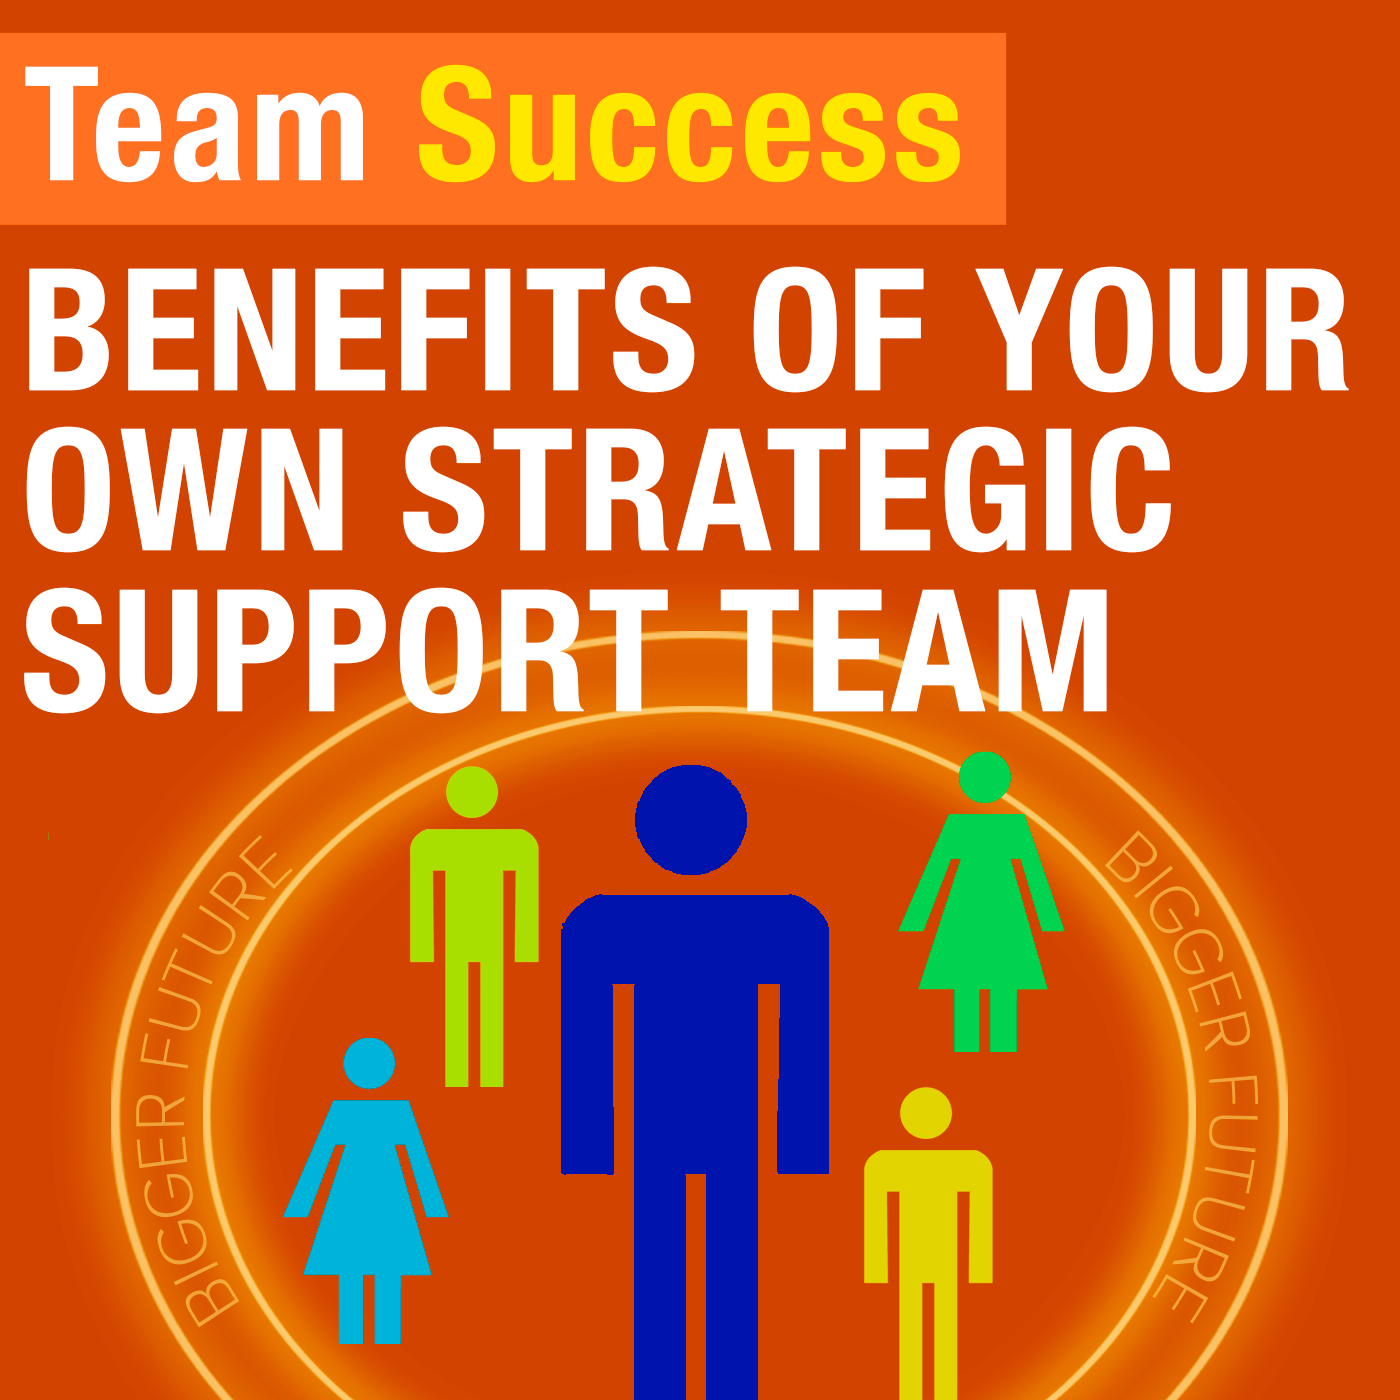 Benefits Of Strategic Support Team